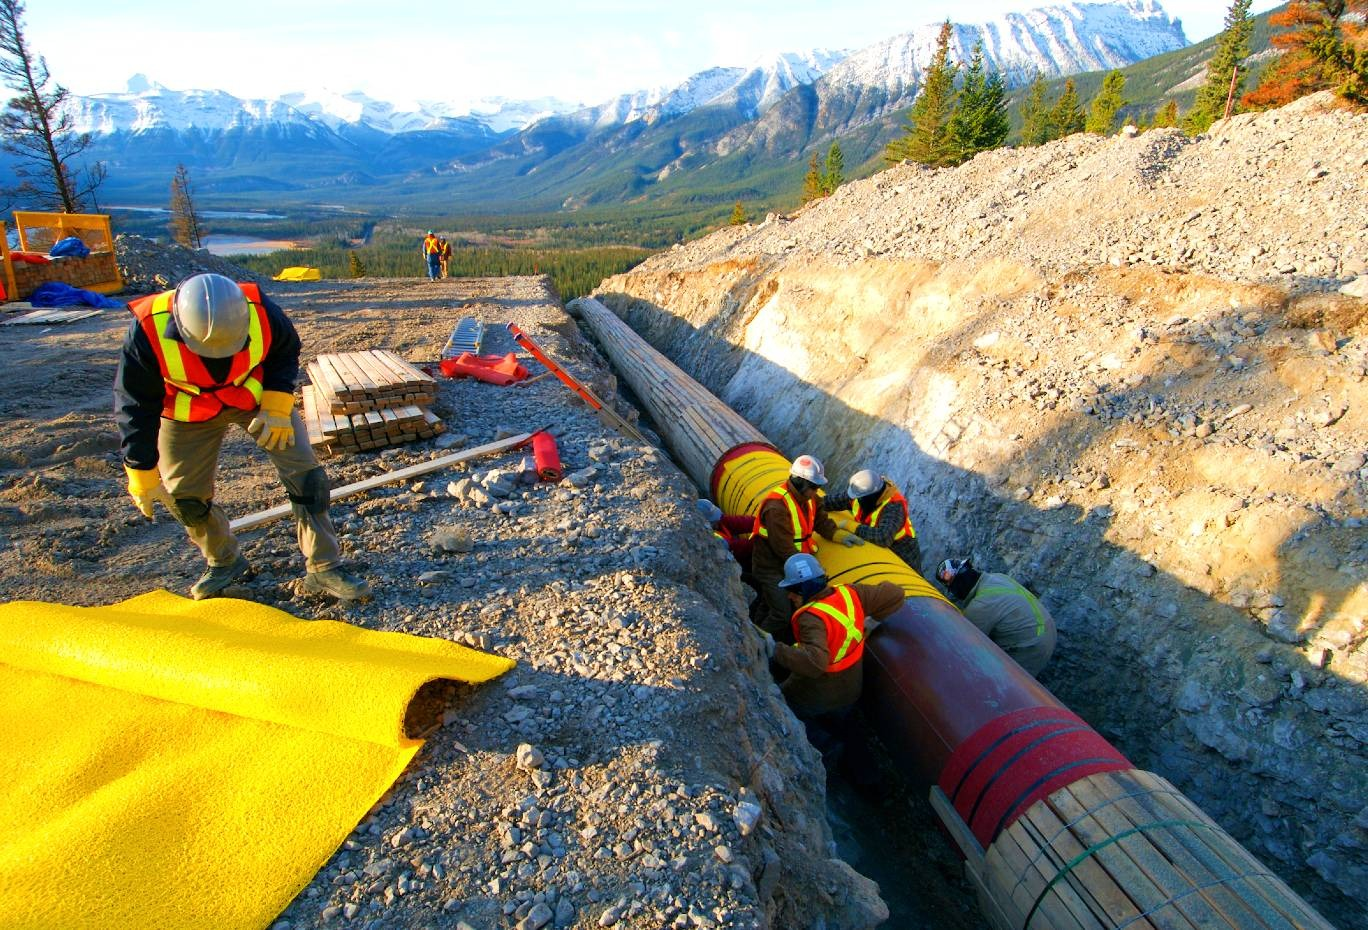 Notice to Proceed: Mobilization of initial TransMountain Workforce